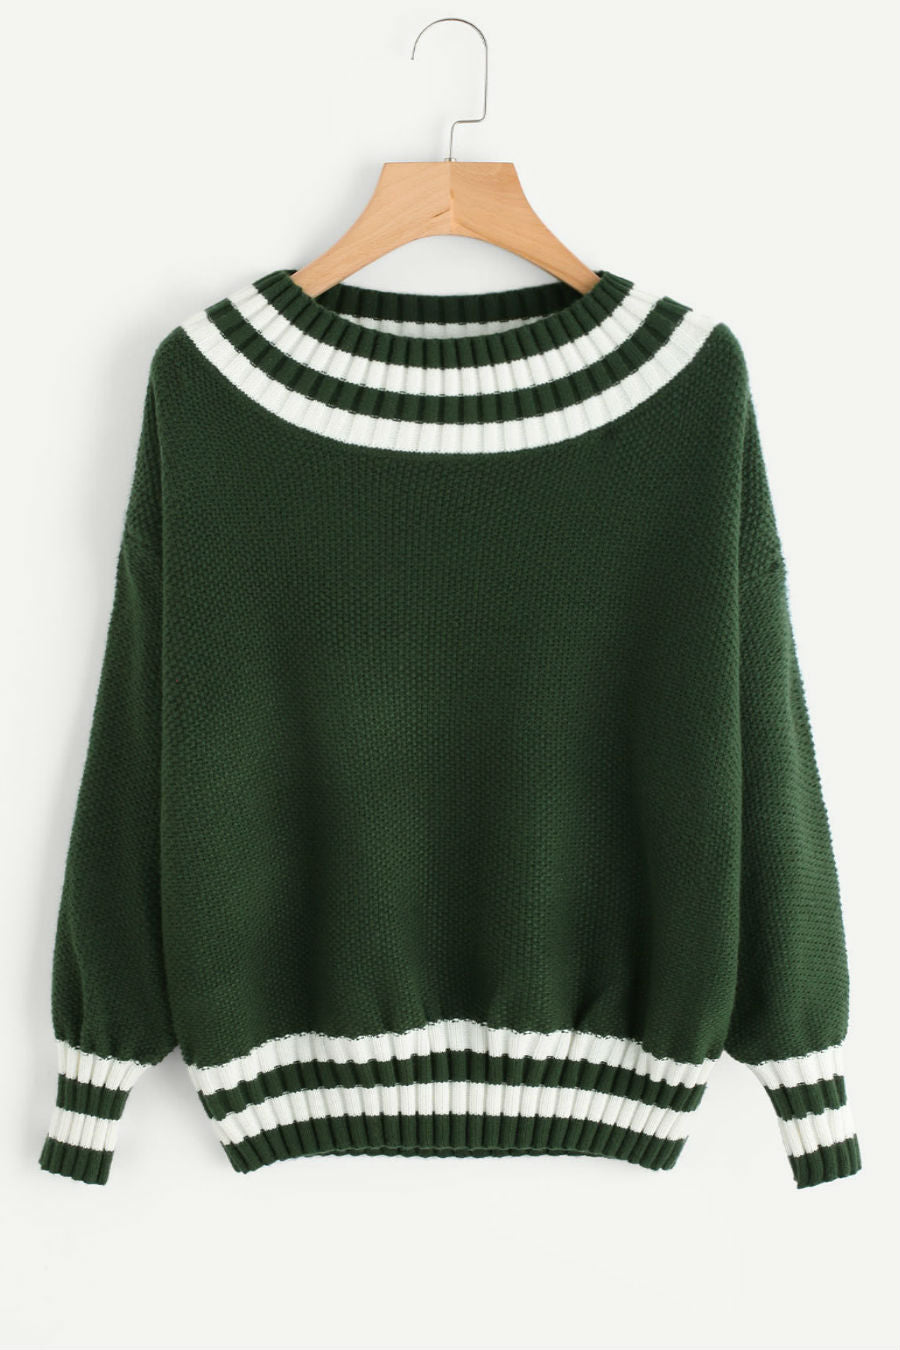 O-neck Stripe Green Sweater